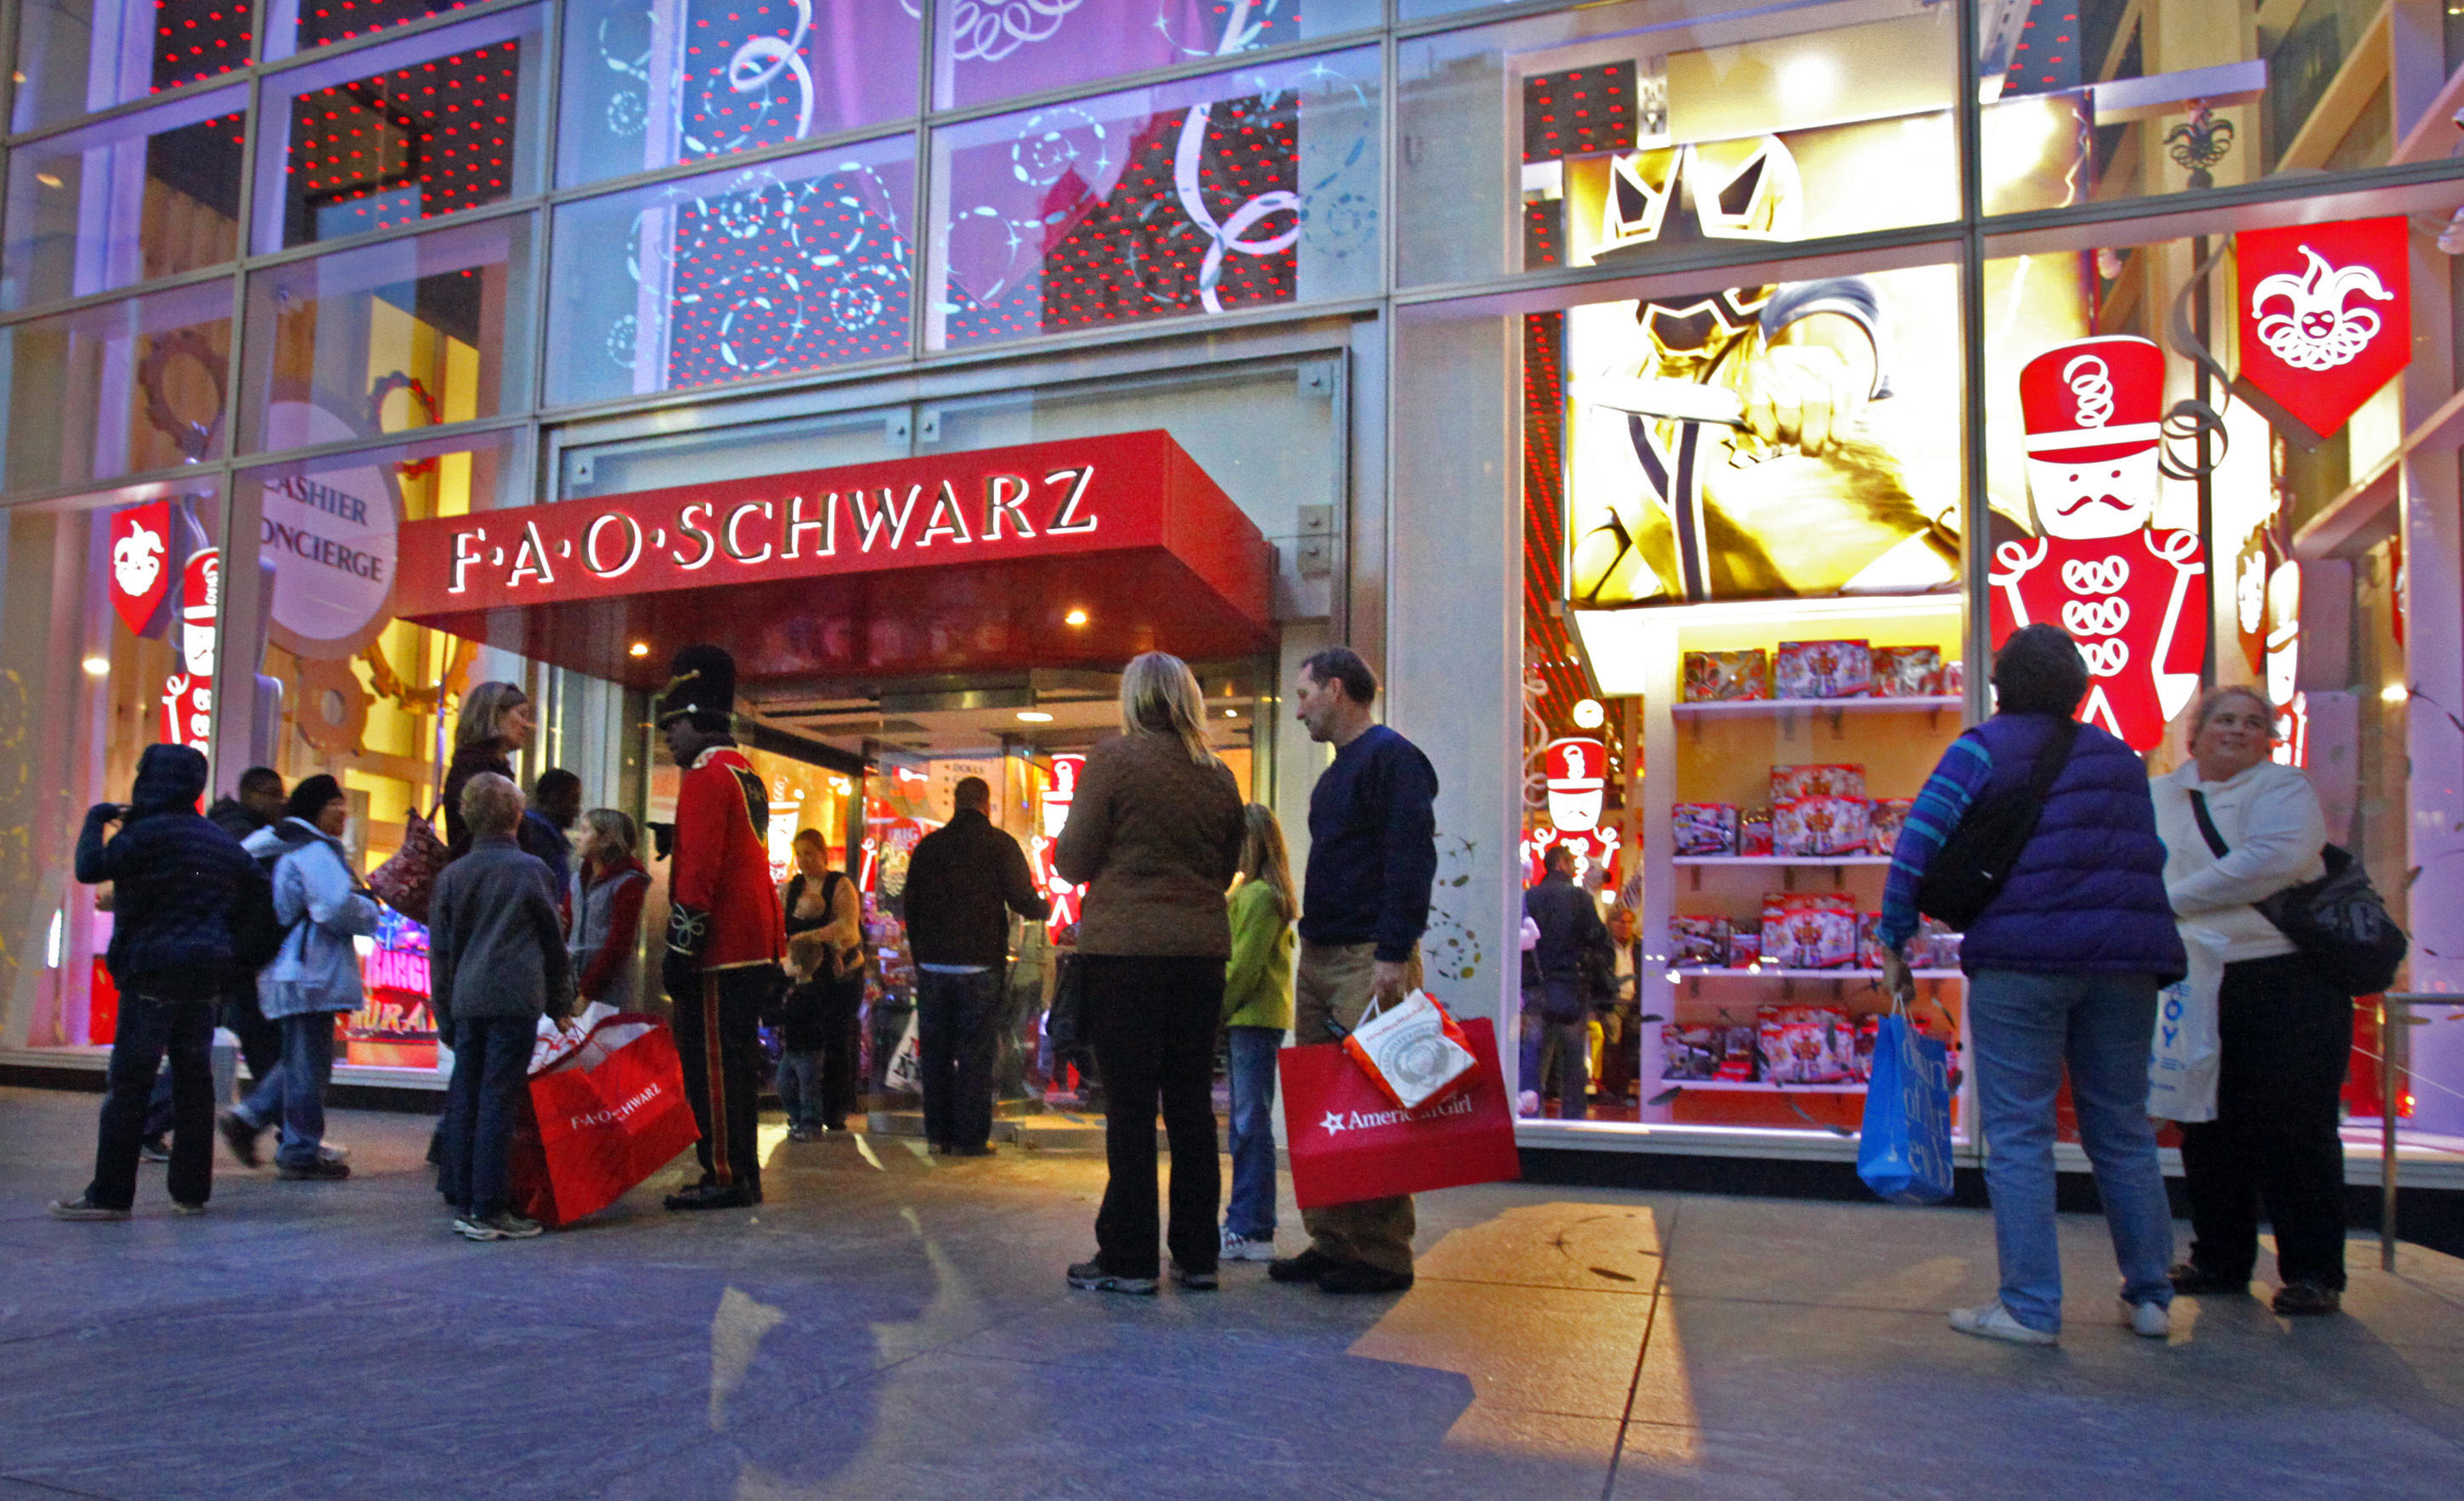 Fao Schwarz World Map.Fao Schwarz Iconic Toy Store Opening Anew In Manhattan Cbs News